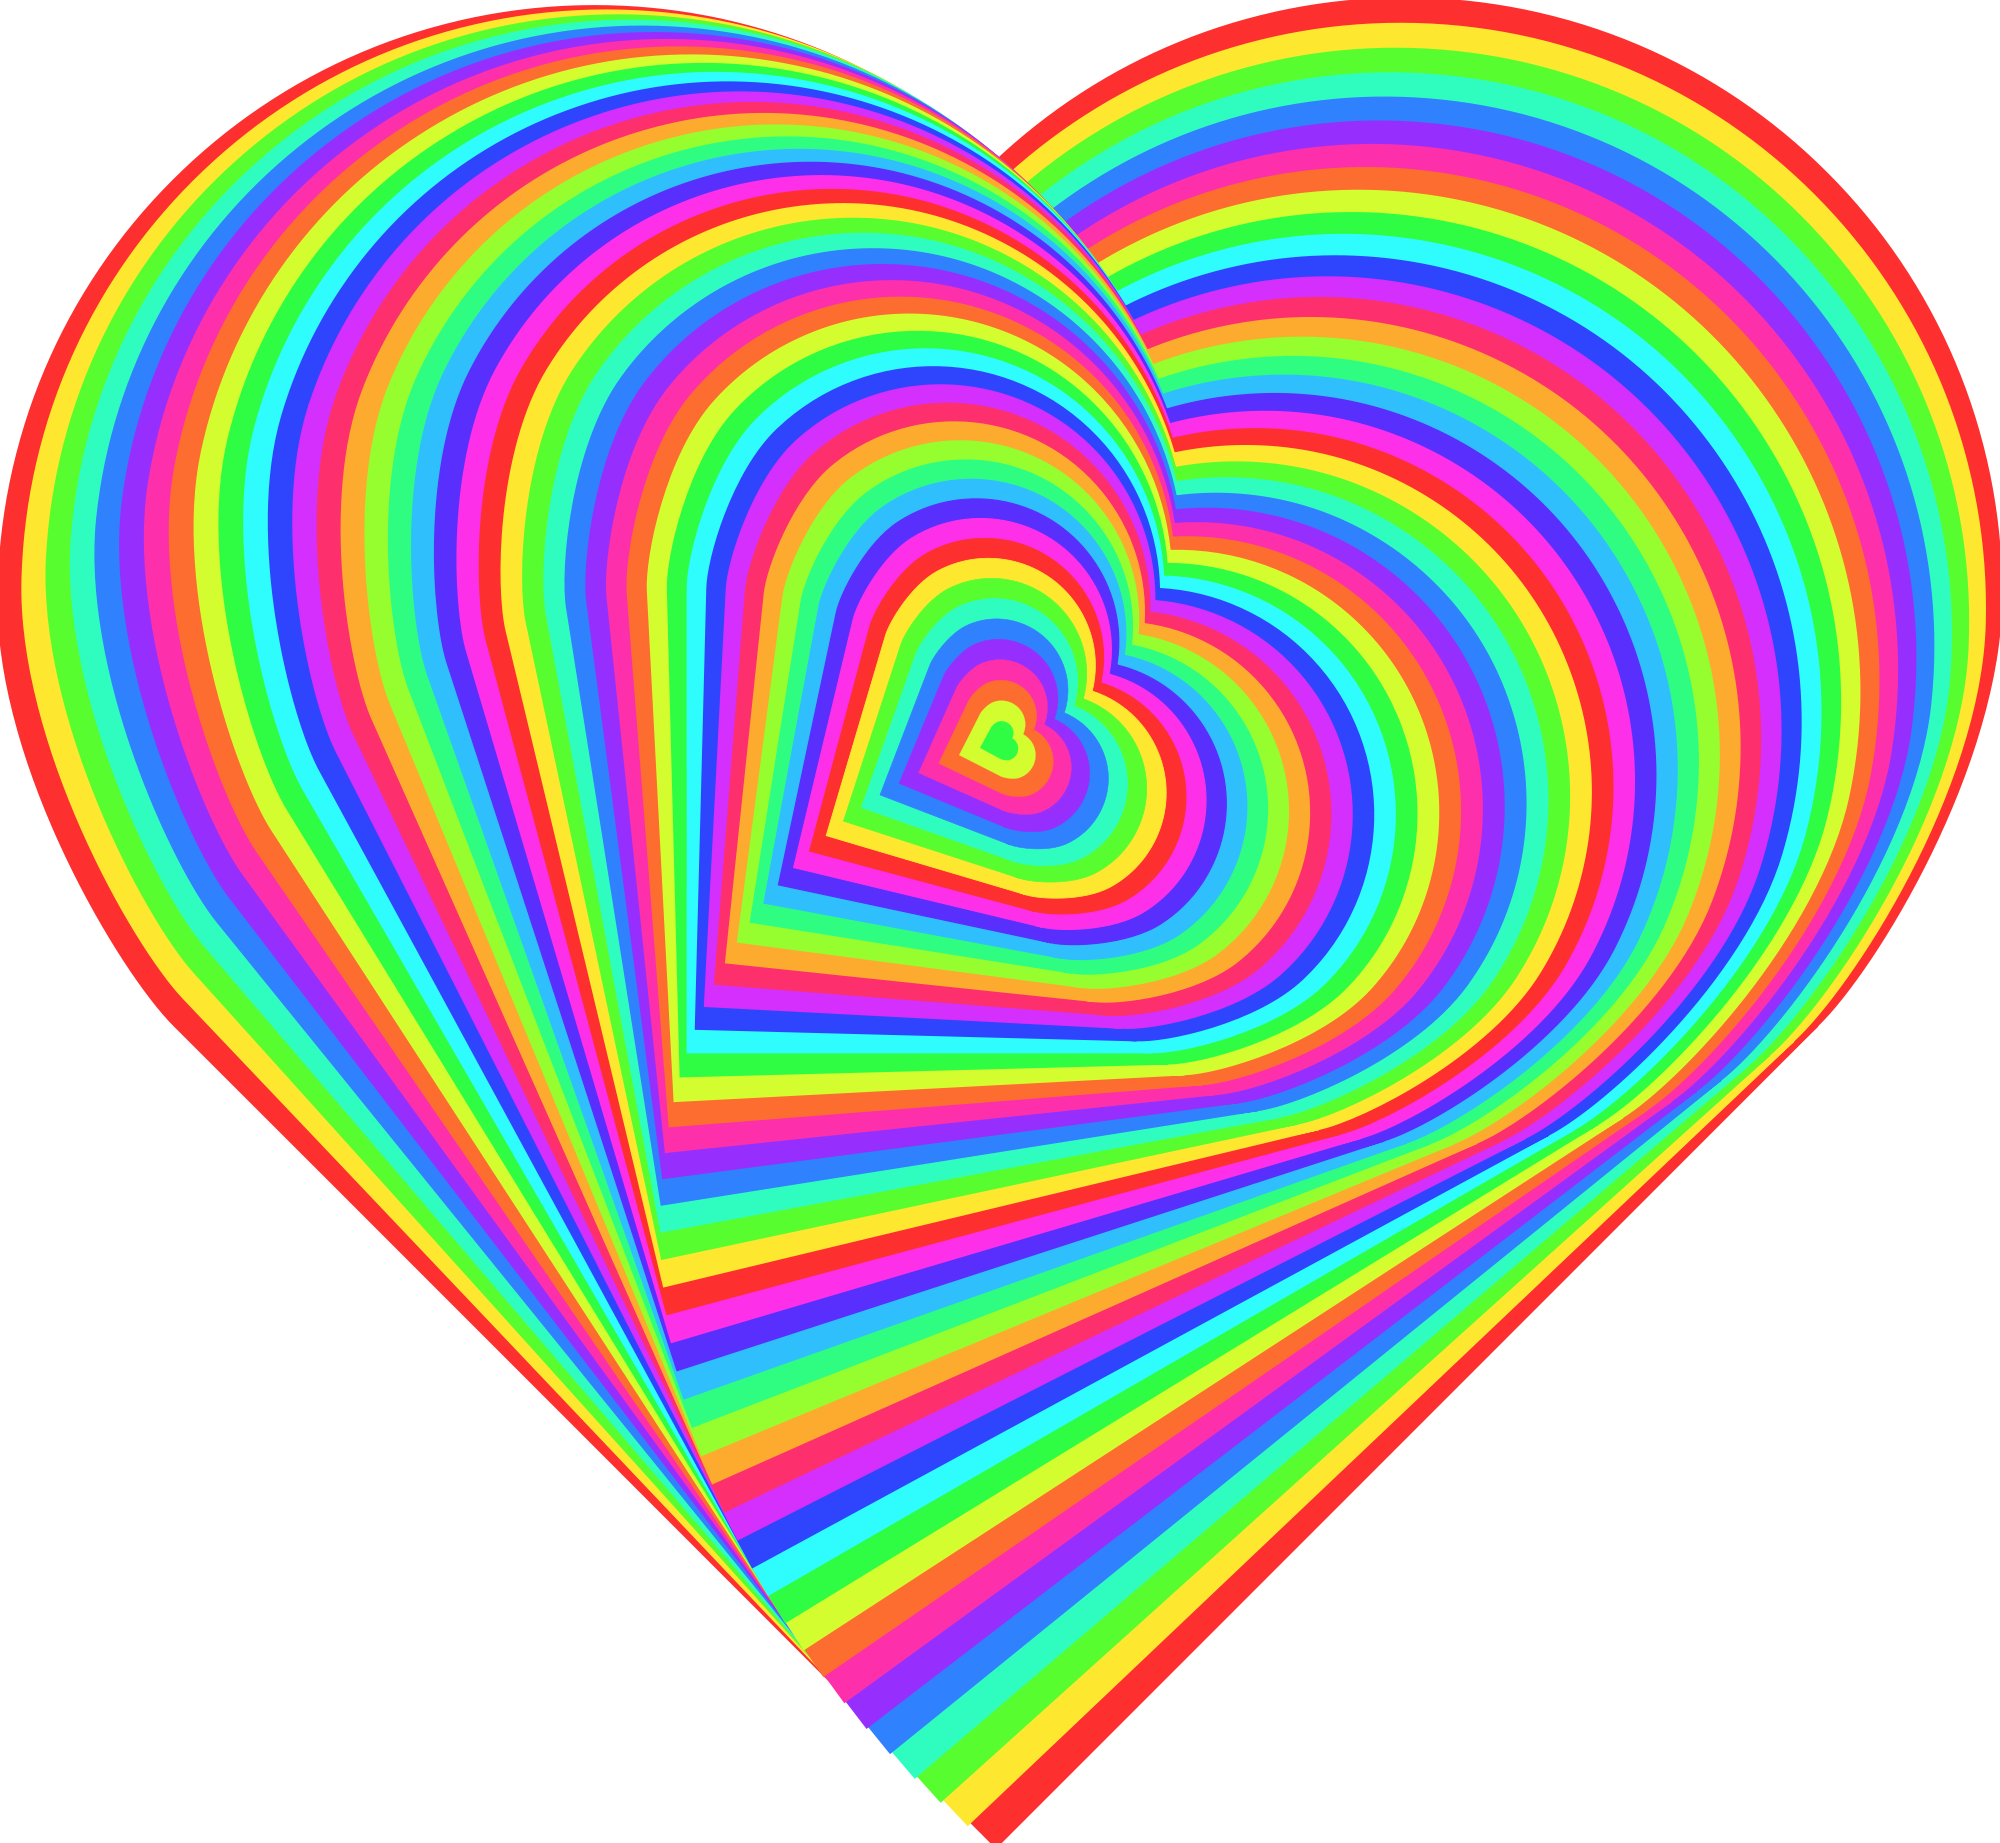 Rainbow heart clipart image black and white File:Love Heart rainbow 01.svg - Wikimedia Commons image black and white